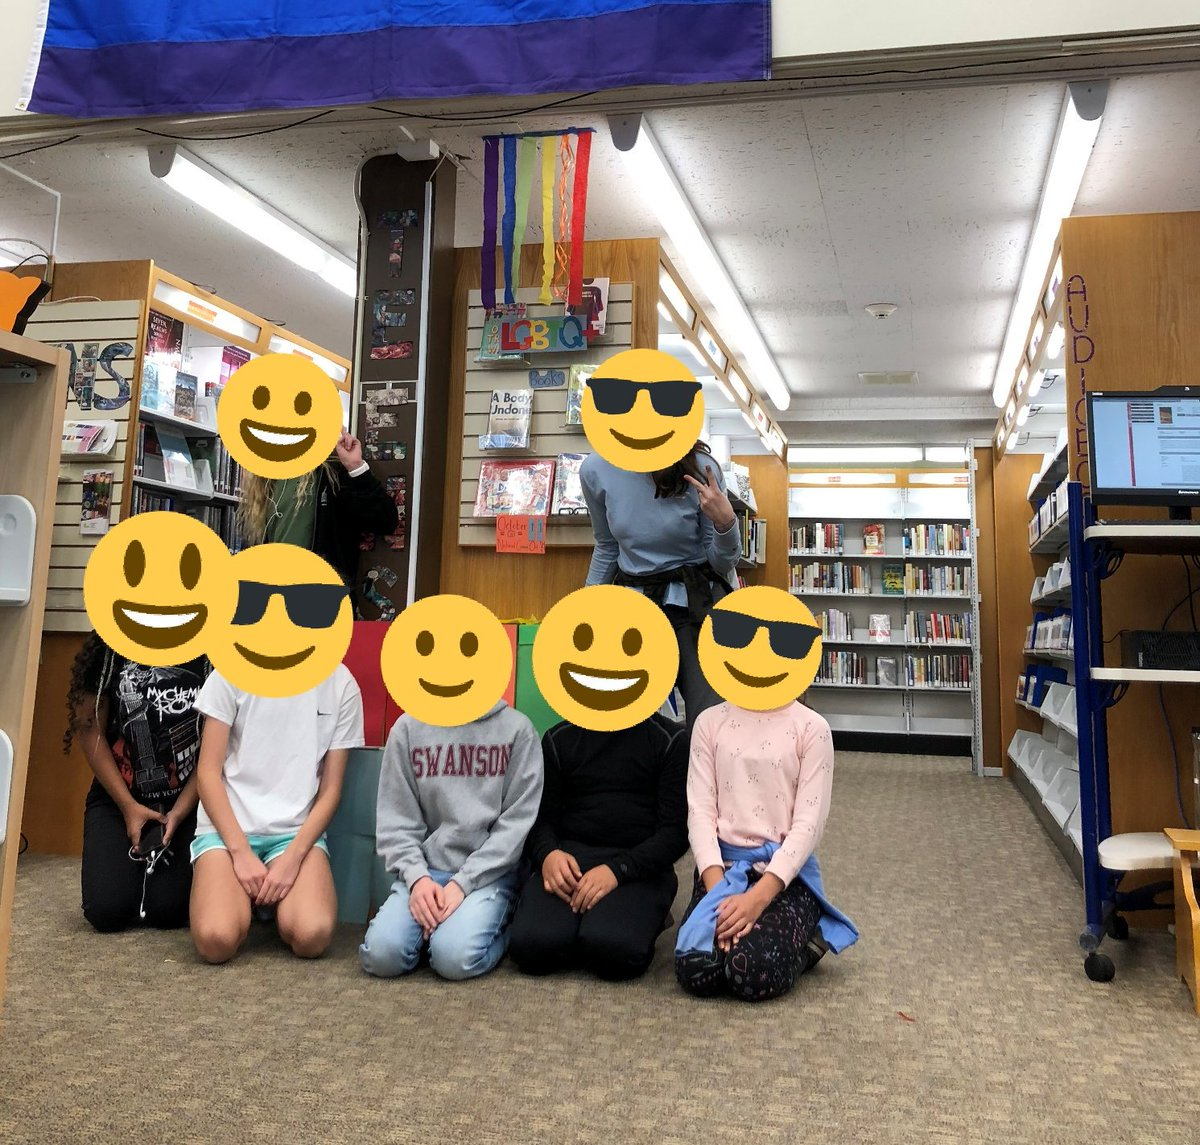 I love the collaboration between our school and Cherrydale Library, our closest <a target='_blank' href='http://twitter.com/ArlingtonVALib'>@ArlingtonVALib</a> branch. Some awesome DHMS students helped create a display for National Coming Out Day. ❤️🏳️🌈 <a target='_blank' href='http://twitter.com/DHMS_EEC'>@DHMS_EEC</a> <a target='_blank' href='http://twitter.com/APSLibrarians'>@APSLibrarians</a> <a target='_blank' href='http://search.twitter.com/search?q=belongandbecome'><a target='_blank' href='https://twitter.com/hashtag/belongandbecome?src=hash'>#belongandbecome</a></a> <a target='_blank' href='https://t.co/SGtZ1uoaRZ'>https://t.co/SGtZ1uoaRZ</a>